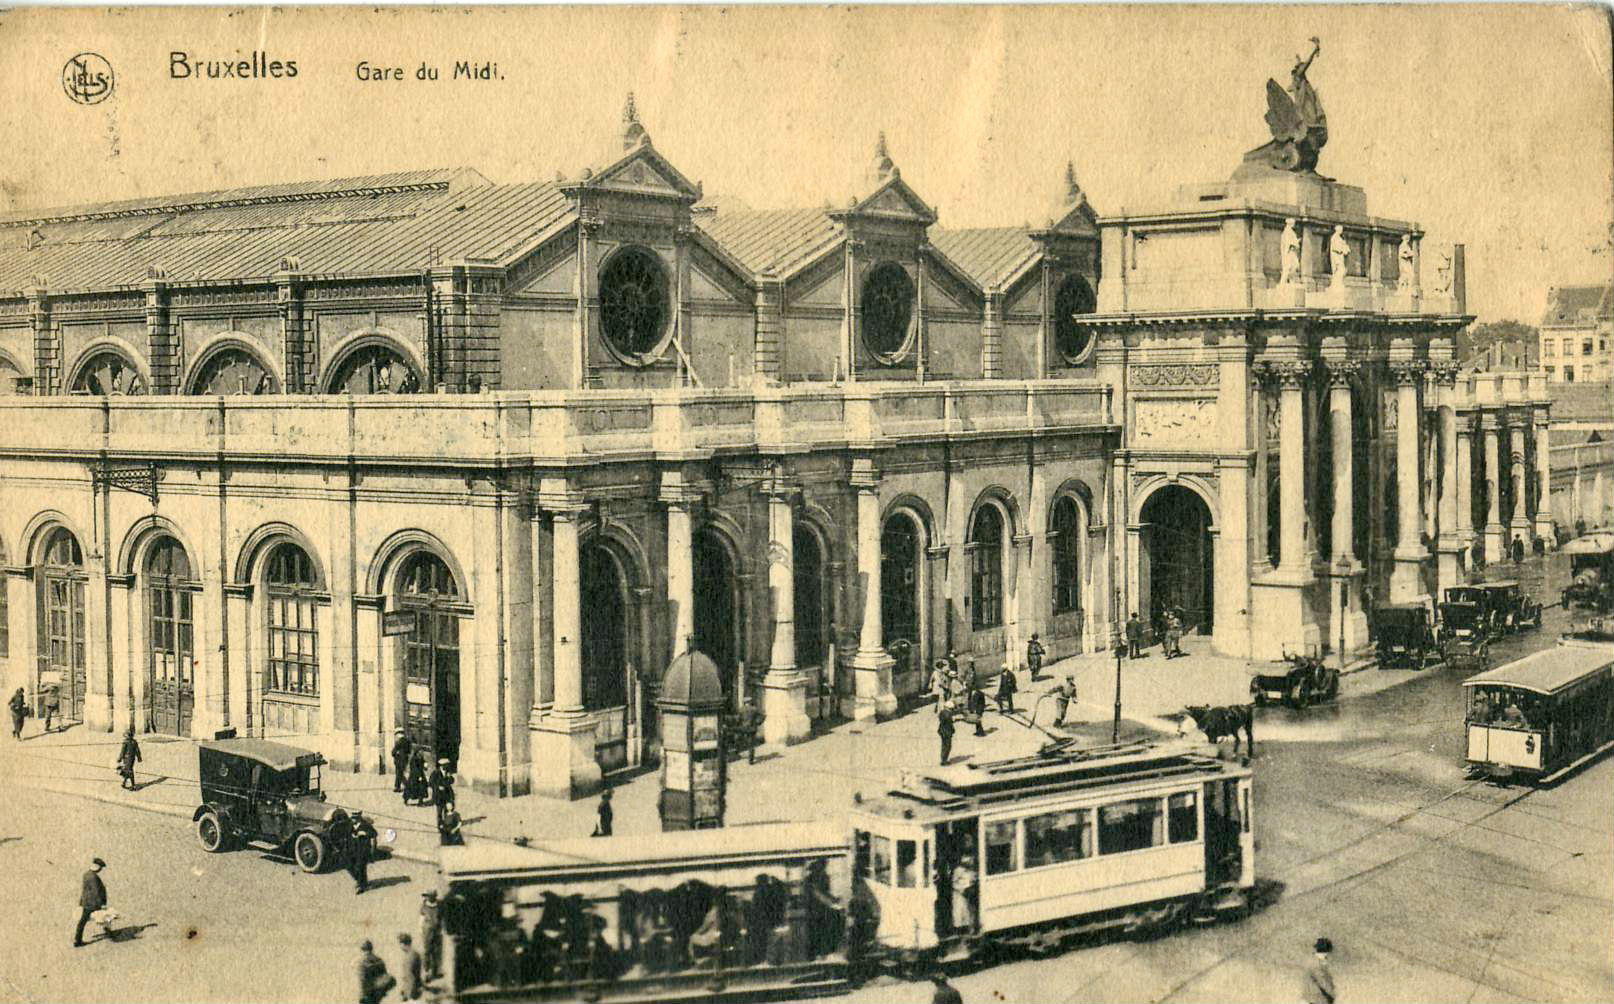 Brussels South Station © Claude_villetaneuse/Wikicommons